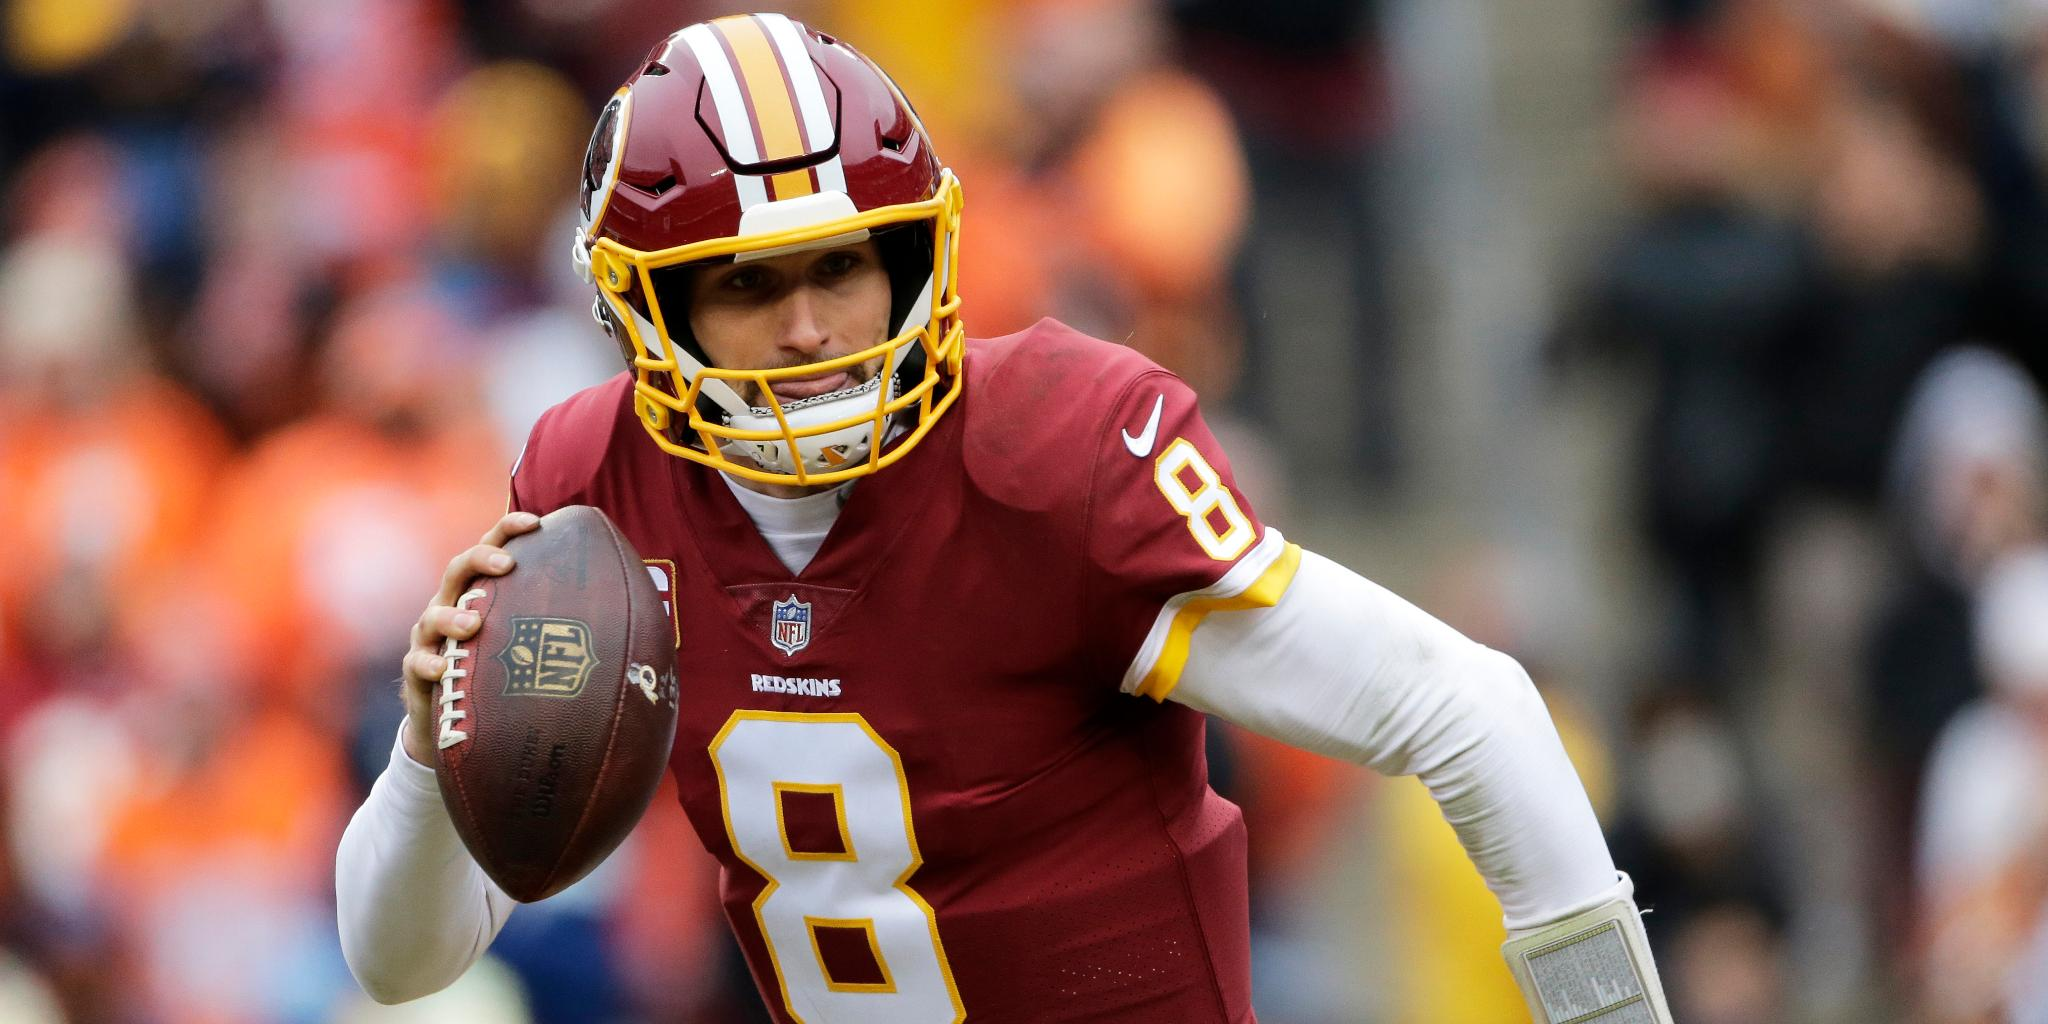 Should the Broncos pursue Kirk Cousins in free agency? https://t.co/yXzaEsoIfR https://t.co/D4N2pRi0Qg